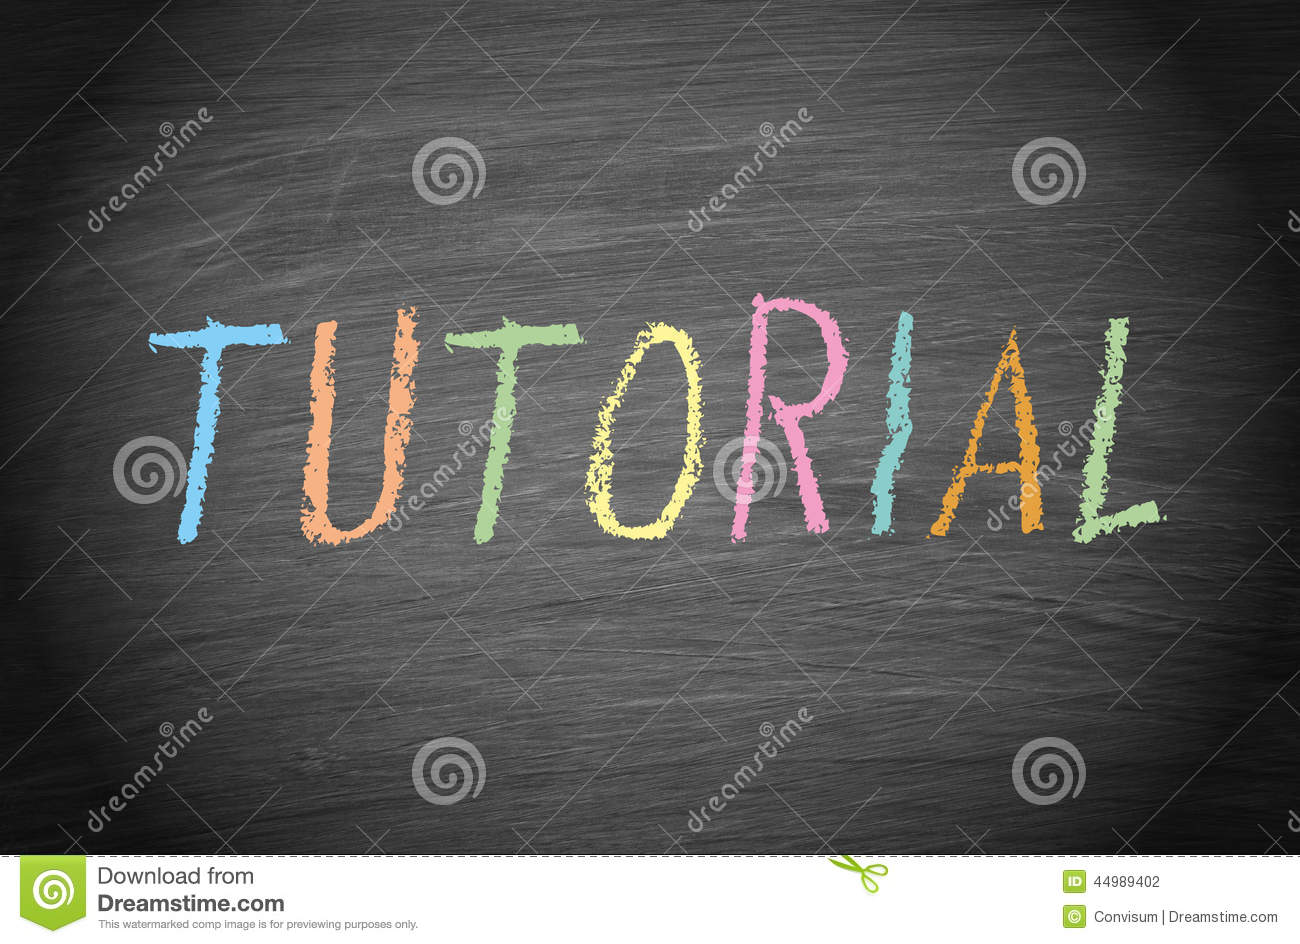 Tutorial In Colored Chalk On Blackboard Stock Photo